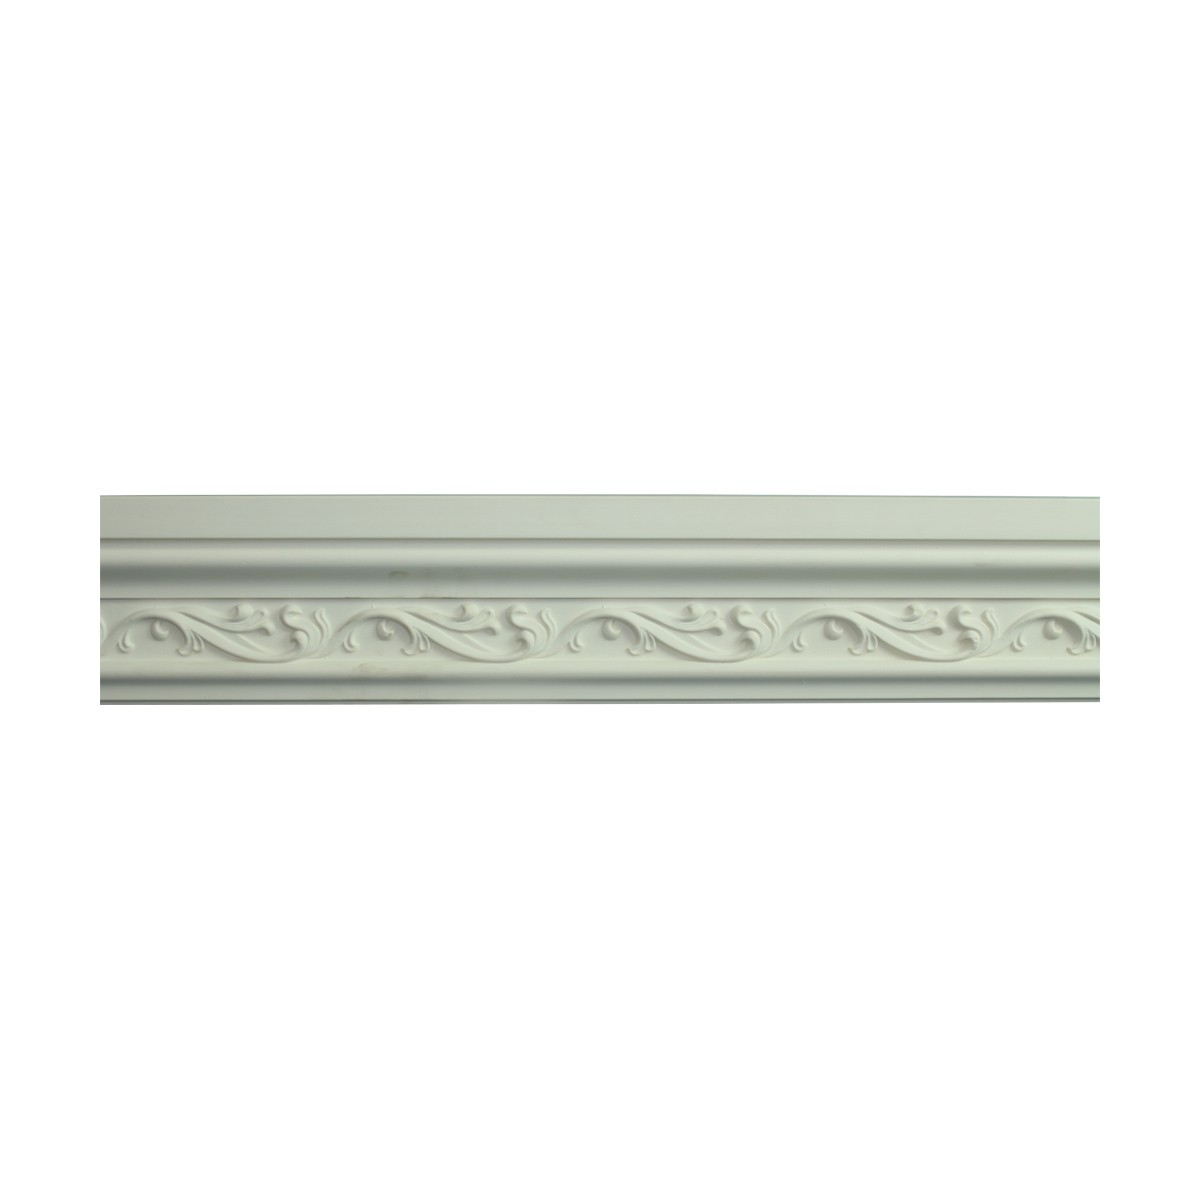 Renovators Supply Crown Molding White Urethane Savanah Design 8 Pieces Totaling 752 Length White PrePrimed Urethane Crown Cornice Molding Cornice Crown Home Depot Ekena Millwork Molding Wall Ceiling Corner Cornice Crown Cove Molding